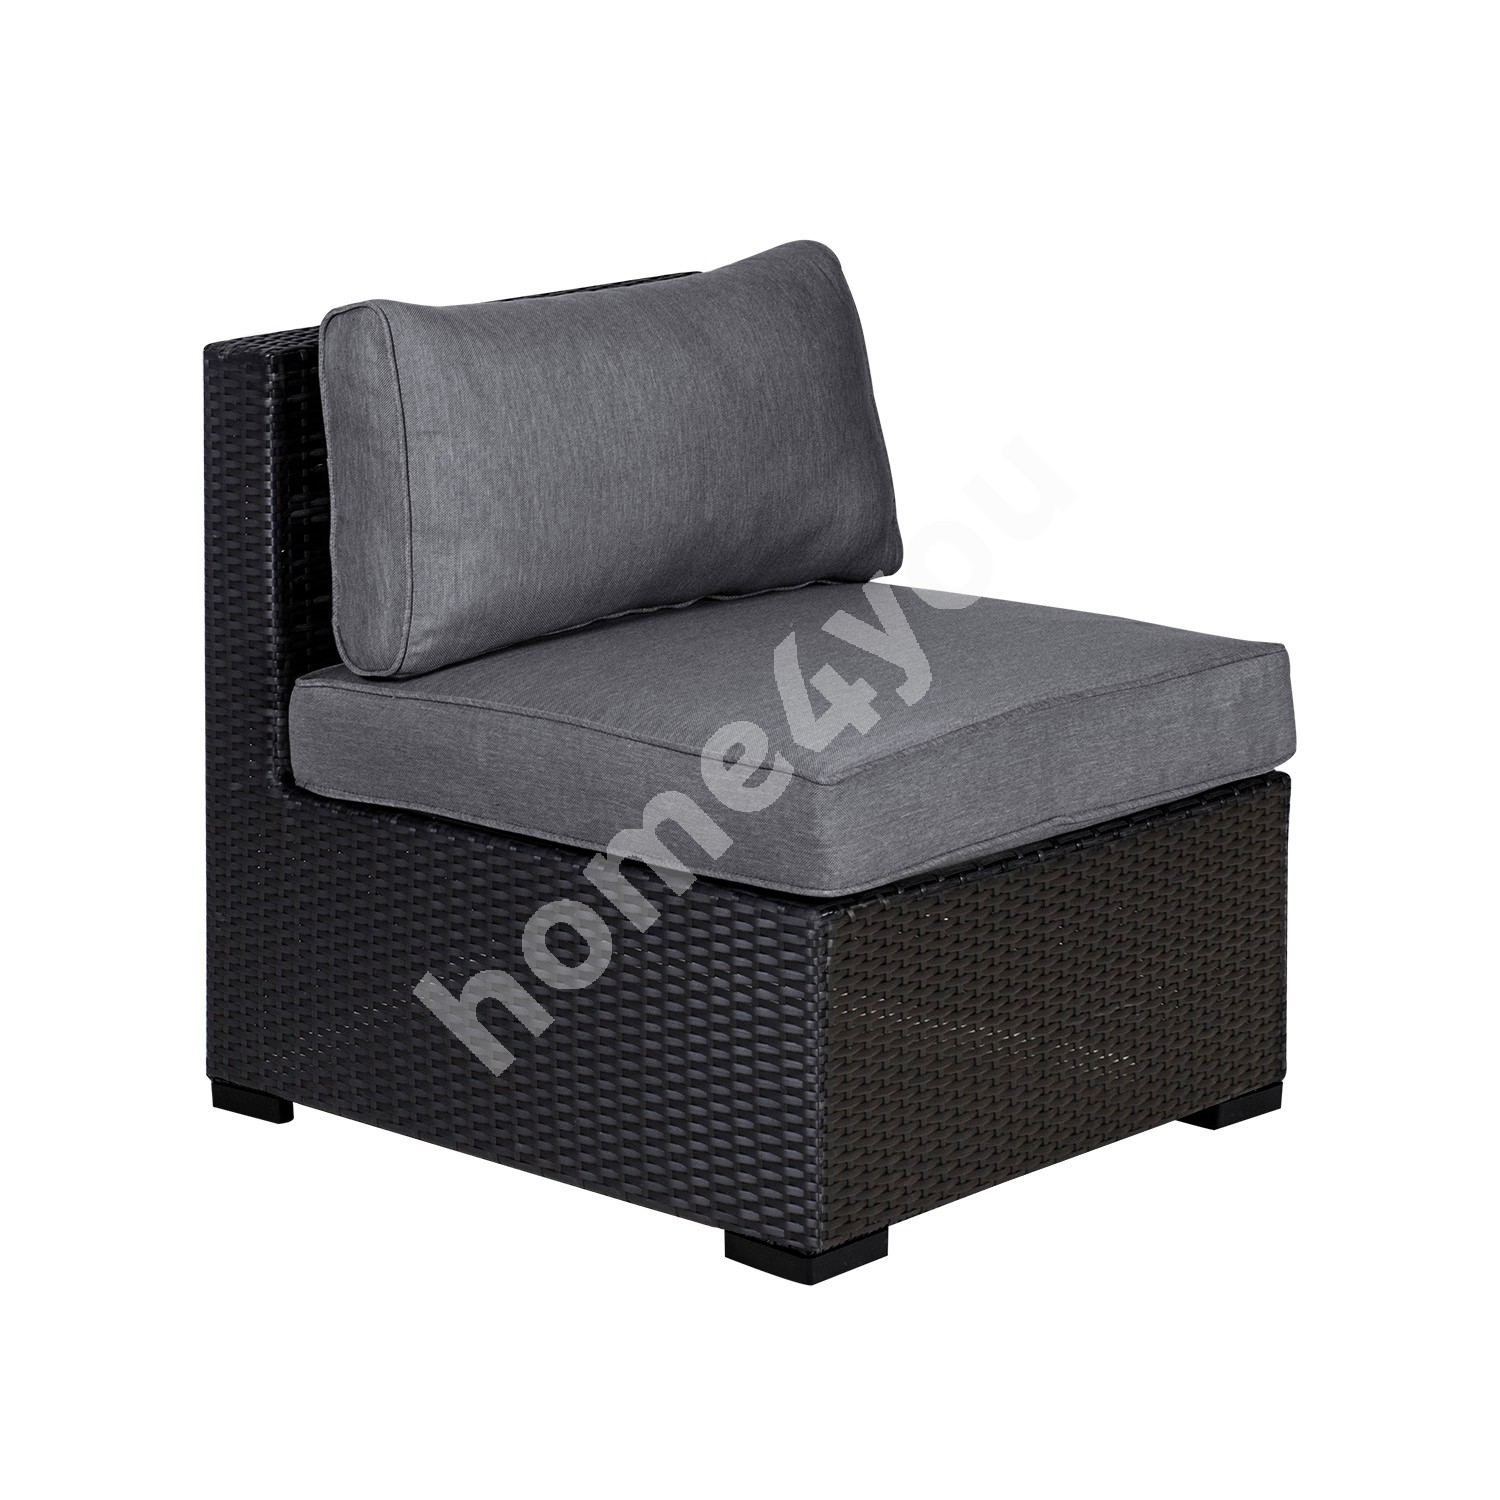 Module sofa SEVILLA with cushions, middle part, 67x76,5xH74,5cm, aluminum frame with plastic wicker, color: black